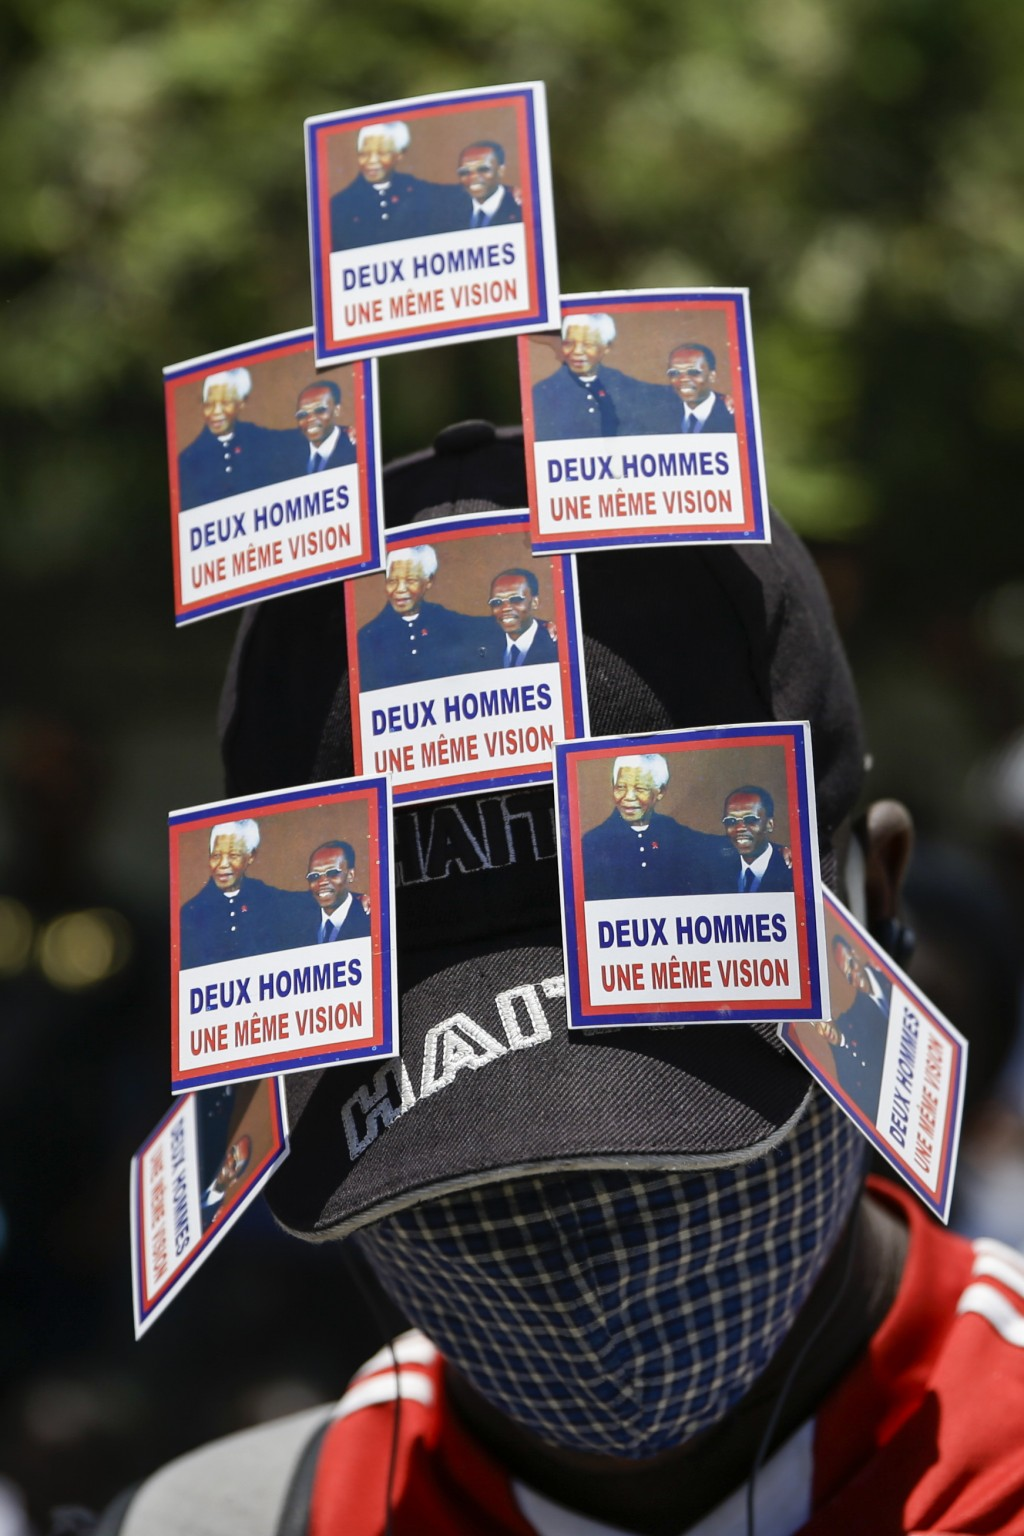 A supporter of former Haitian President Jean-Bertrand Aristide wears stickers of him and late South African President Nelson Mandela, as he awaits Ari...